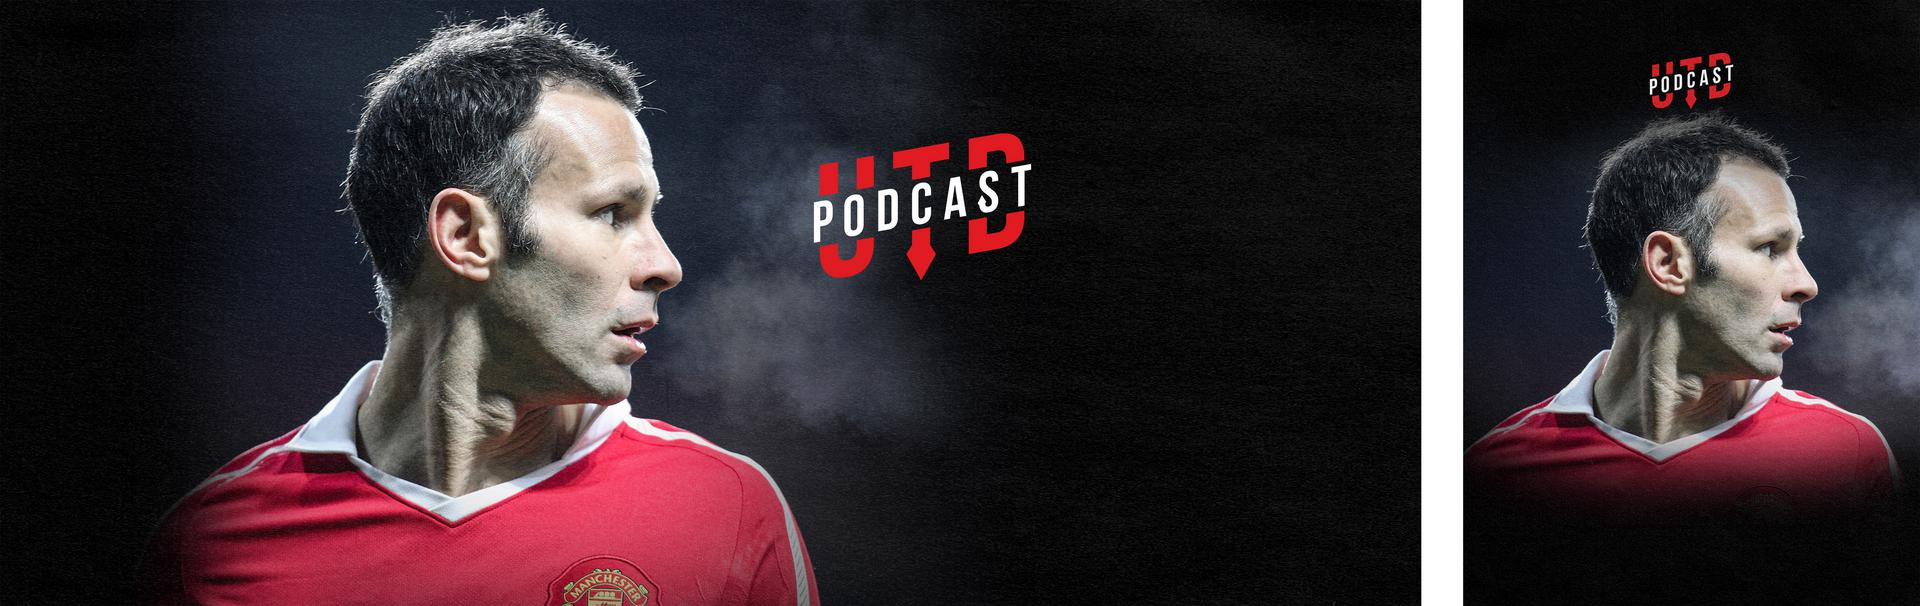 Promotional Ryan Giggs UTD Podcast image.